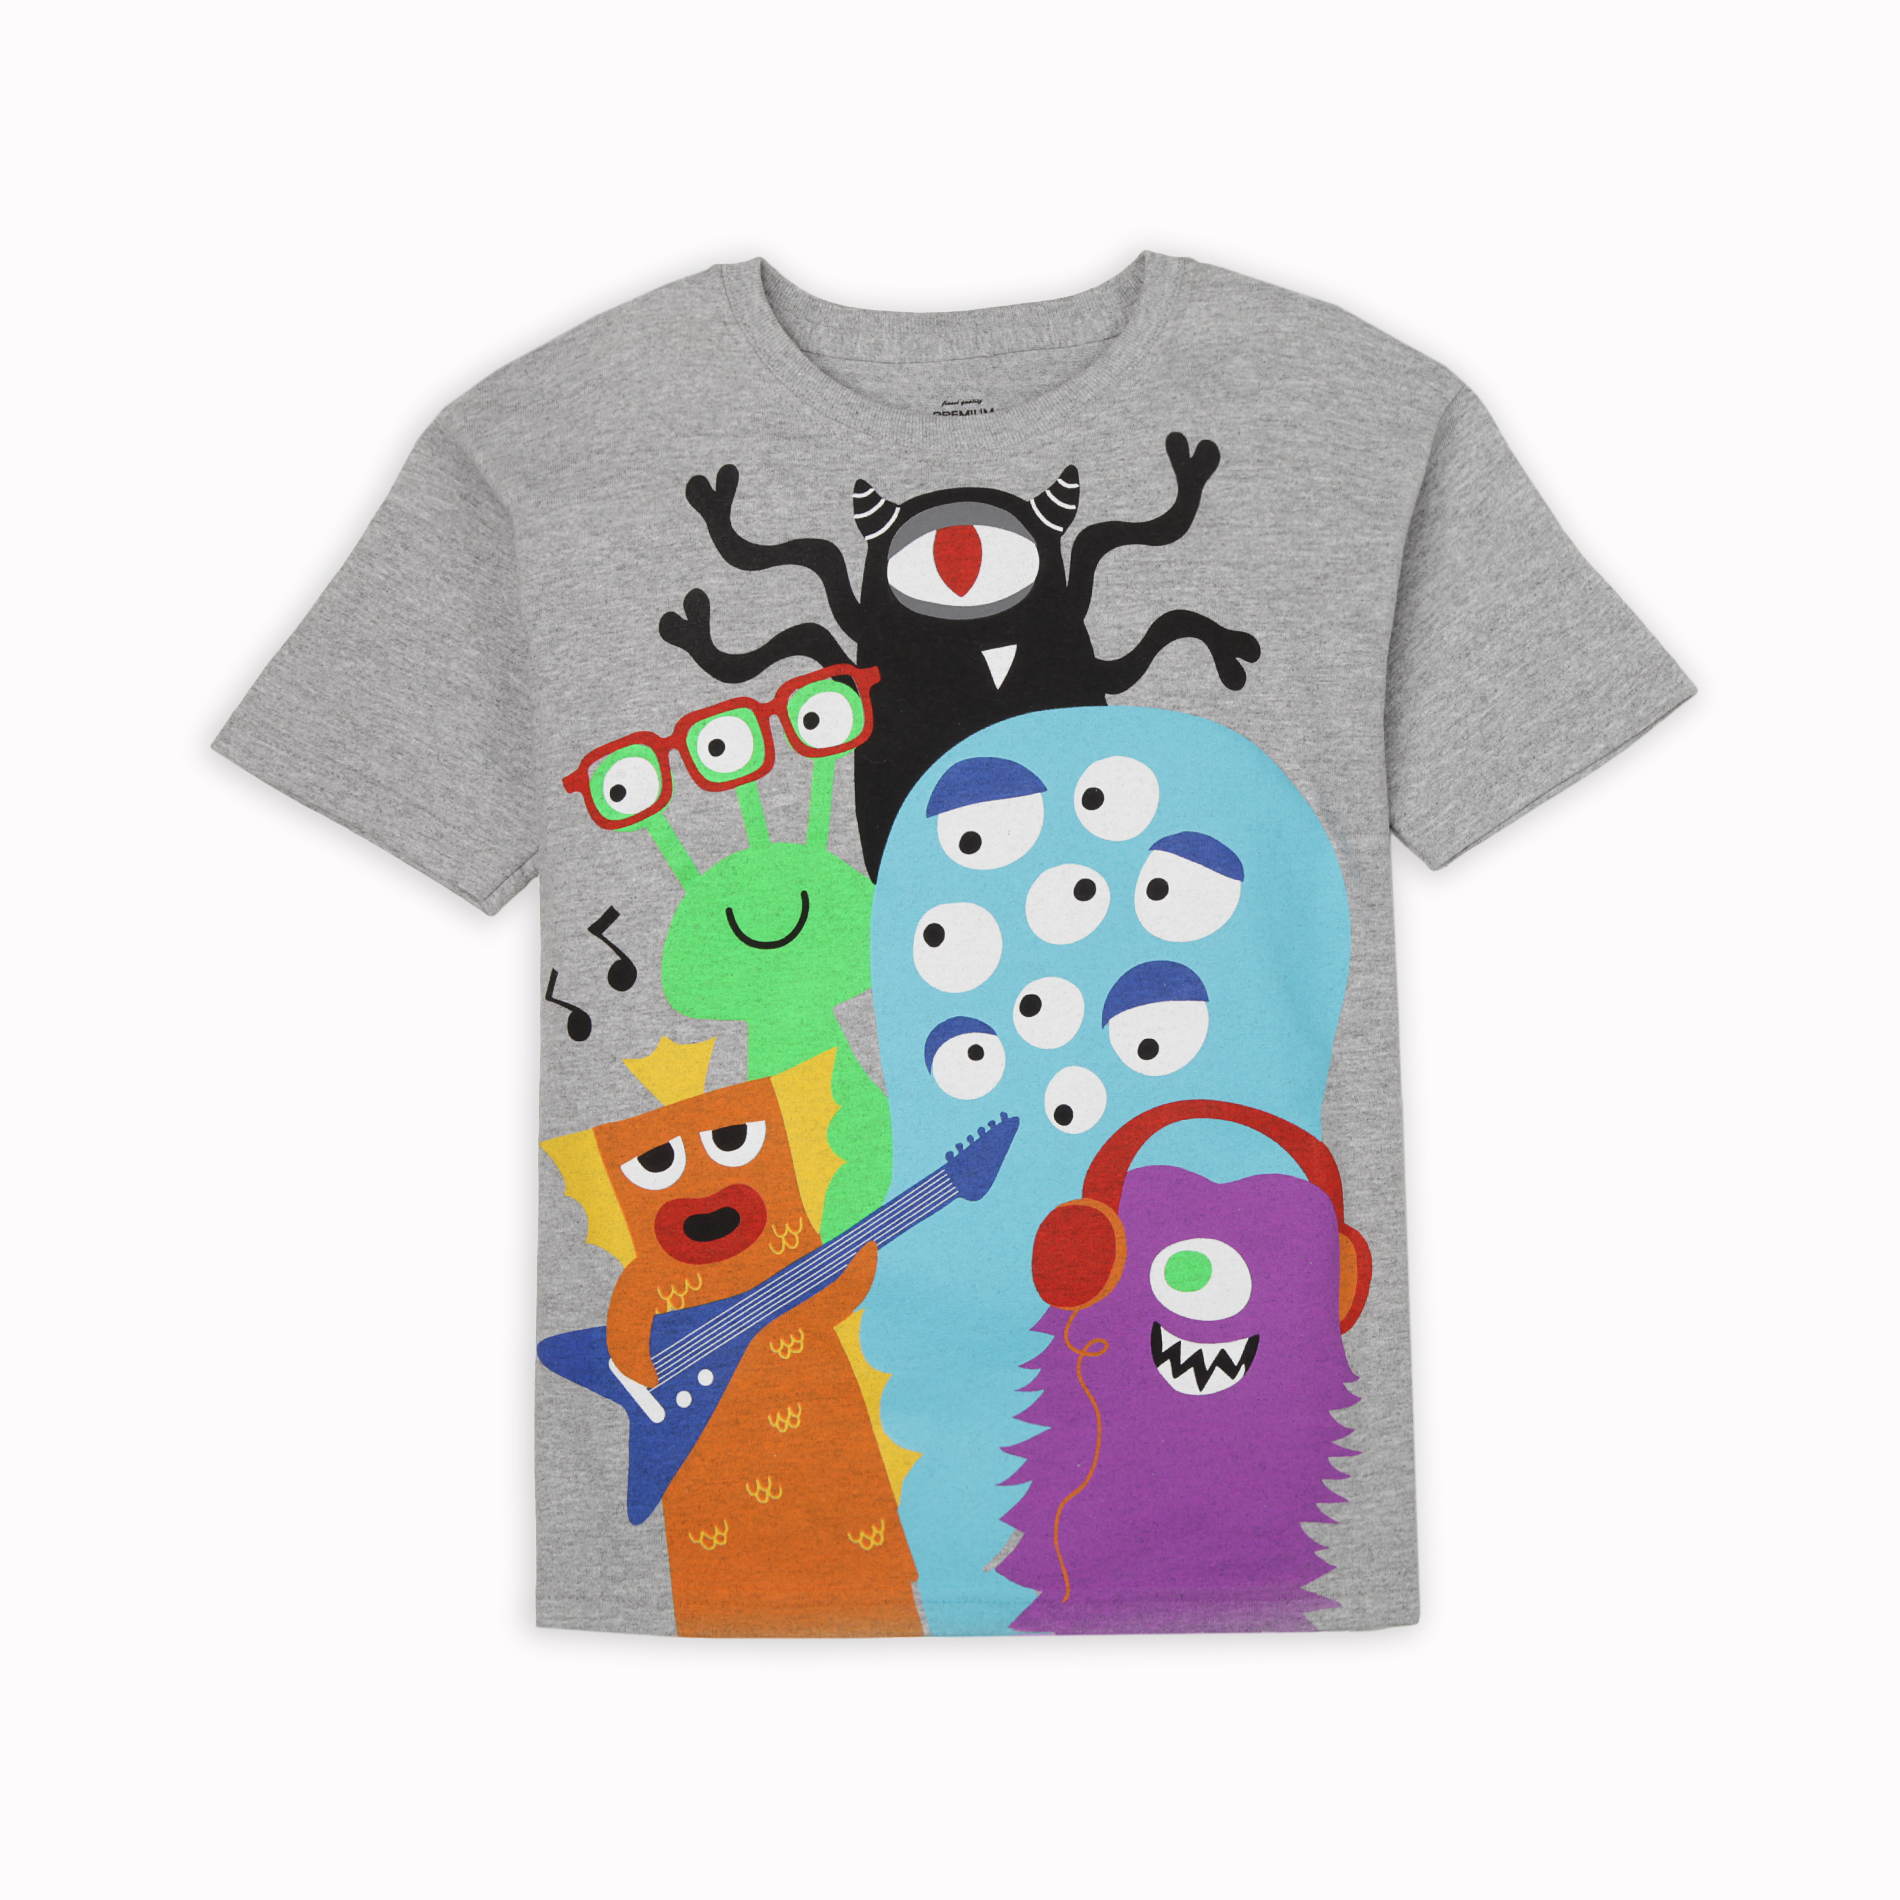 Boy's Graphic T-Shirt - Music Monsters